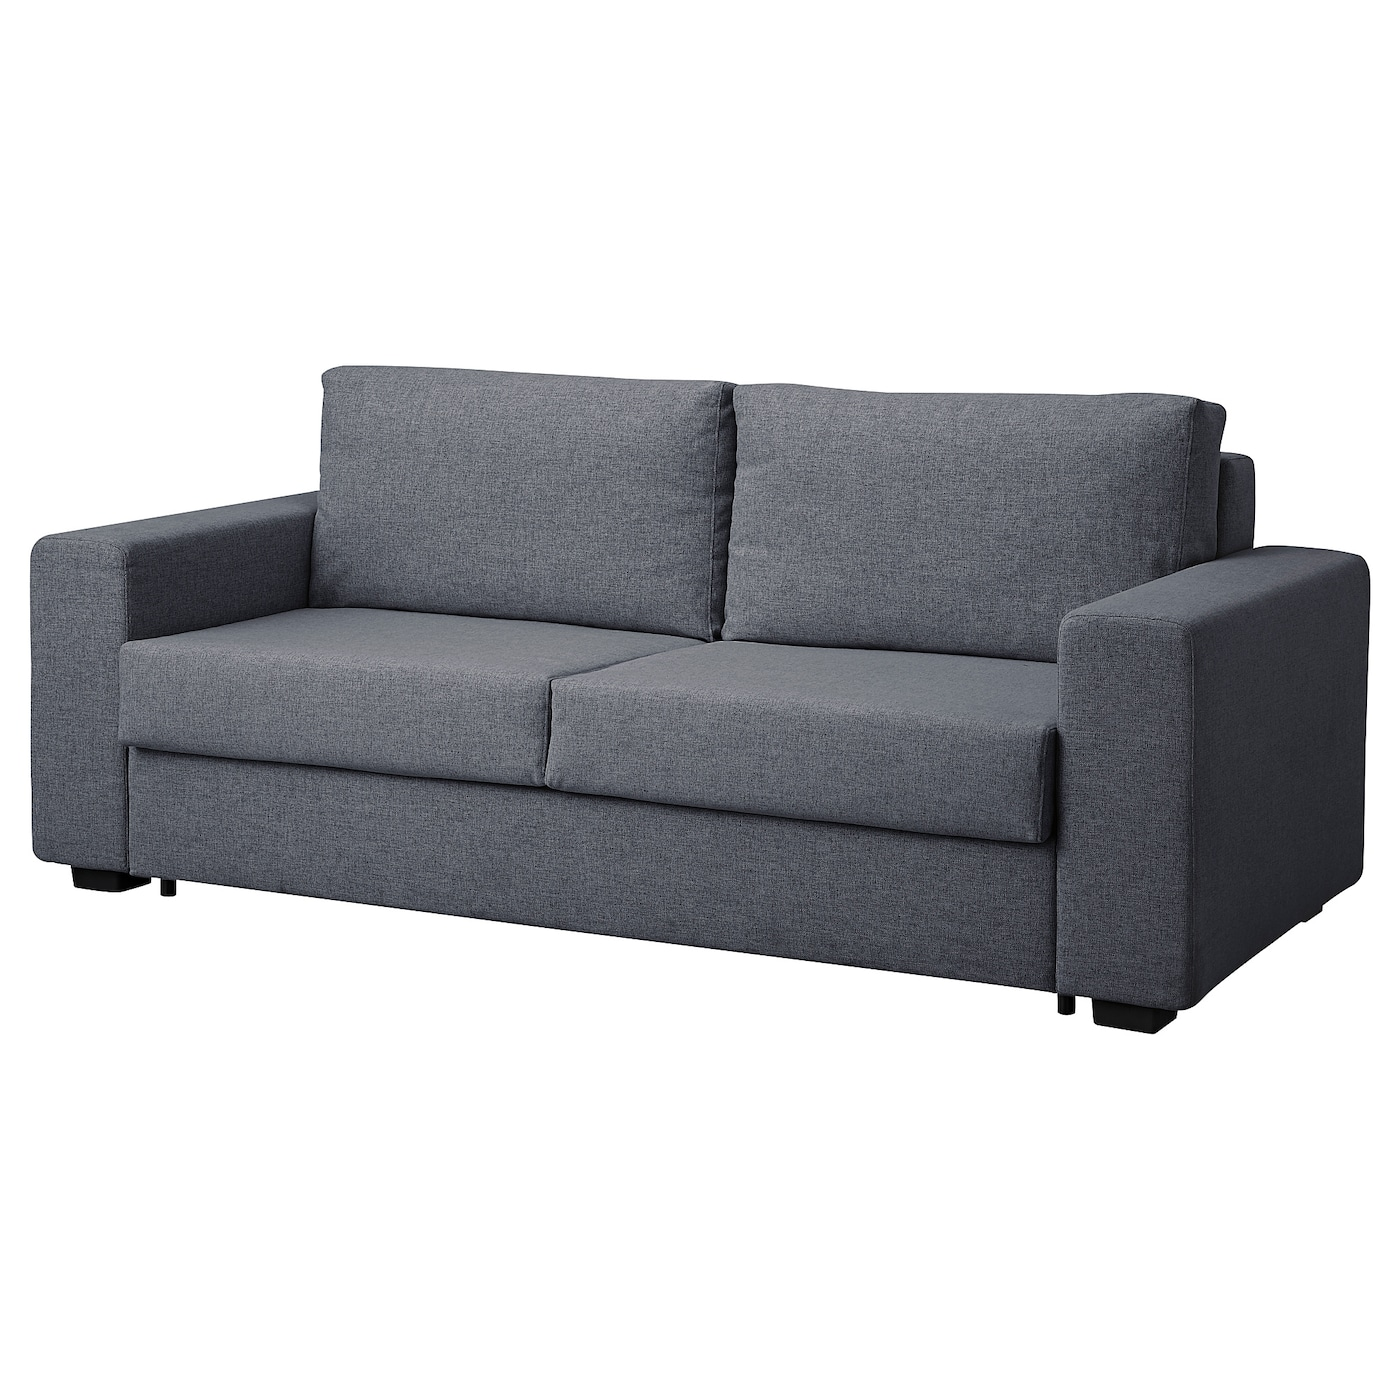 TOLBO 5-seat sofa-bed - Gunnared grey